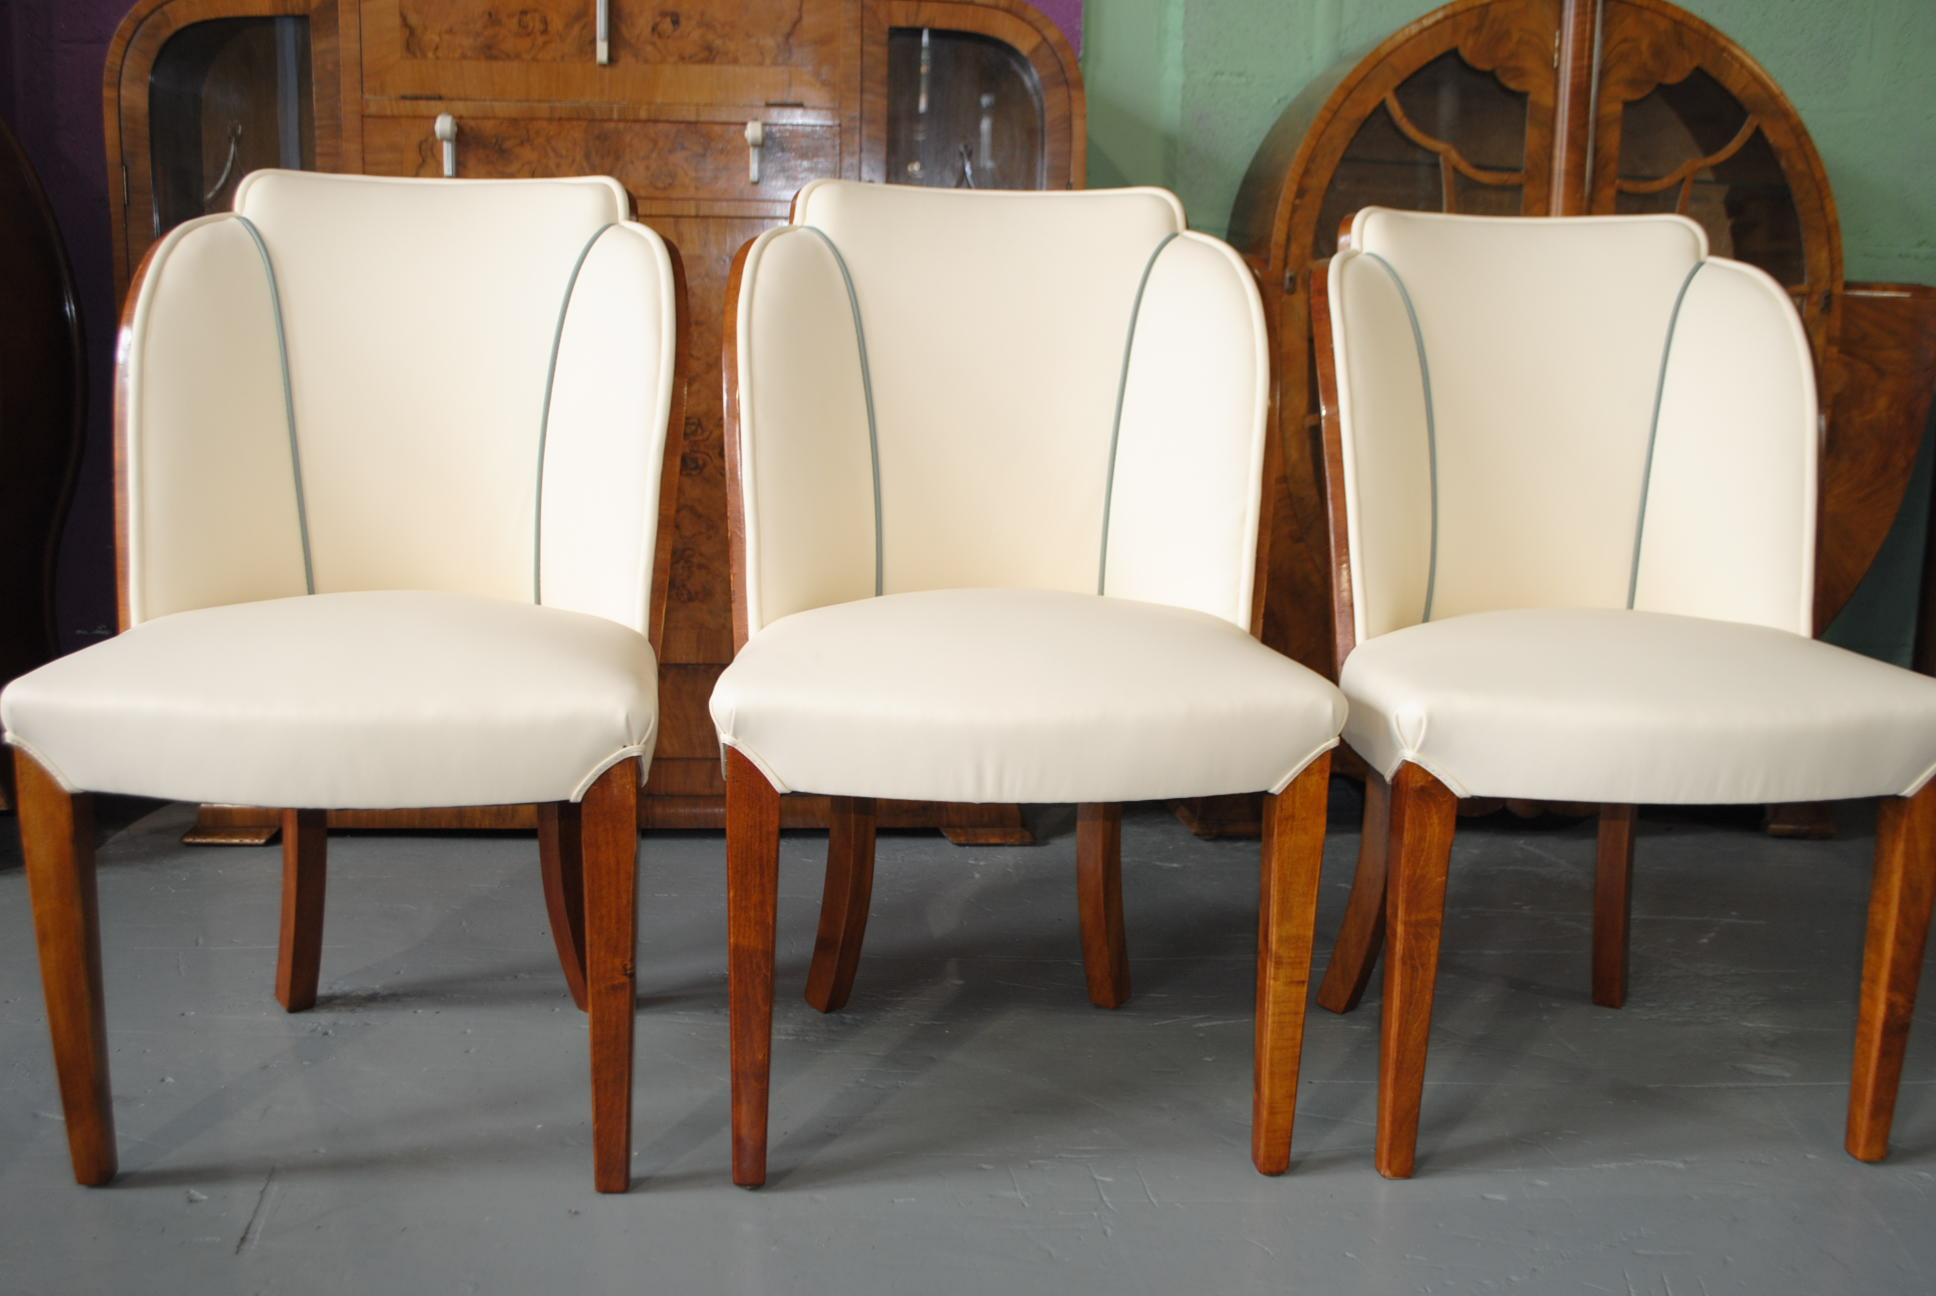 Enquire About Epstein Dining Table And 6 Cloud Back Chairs In Fiddle Maple